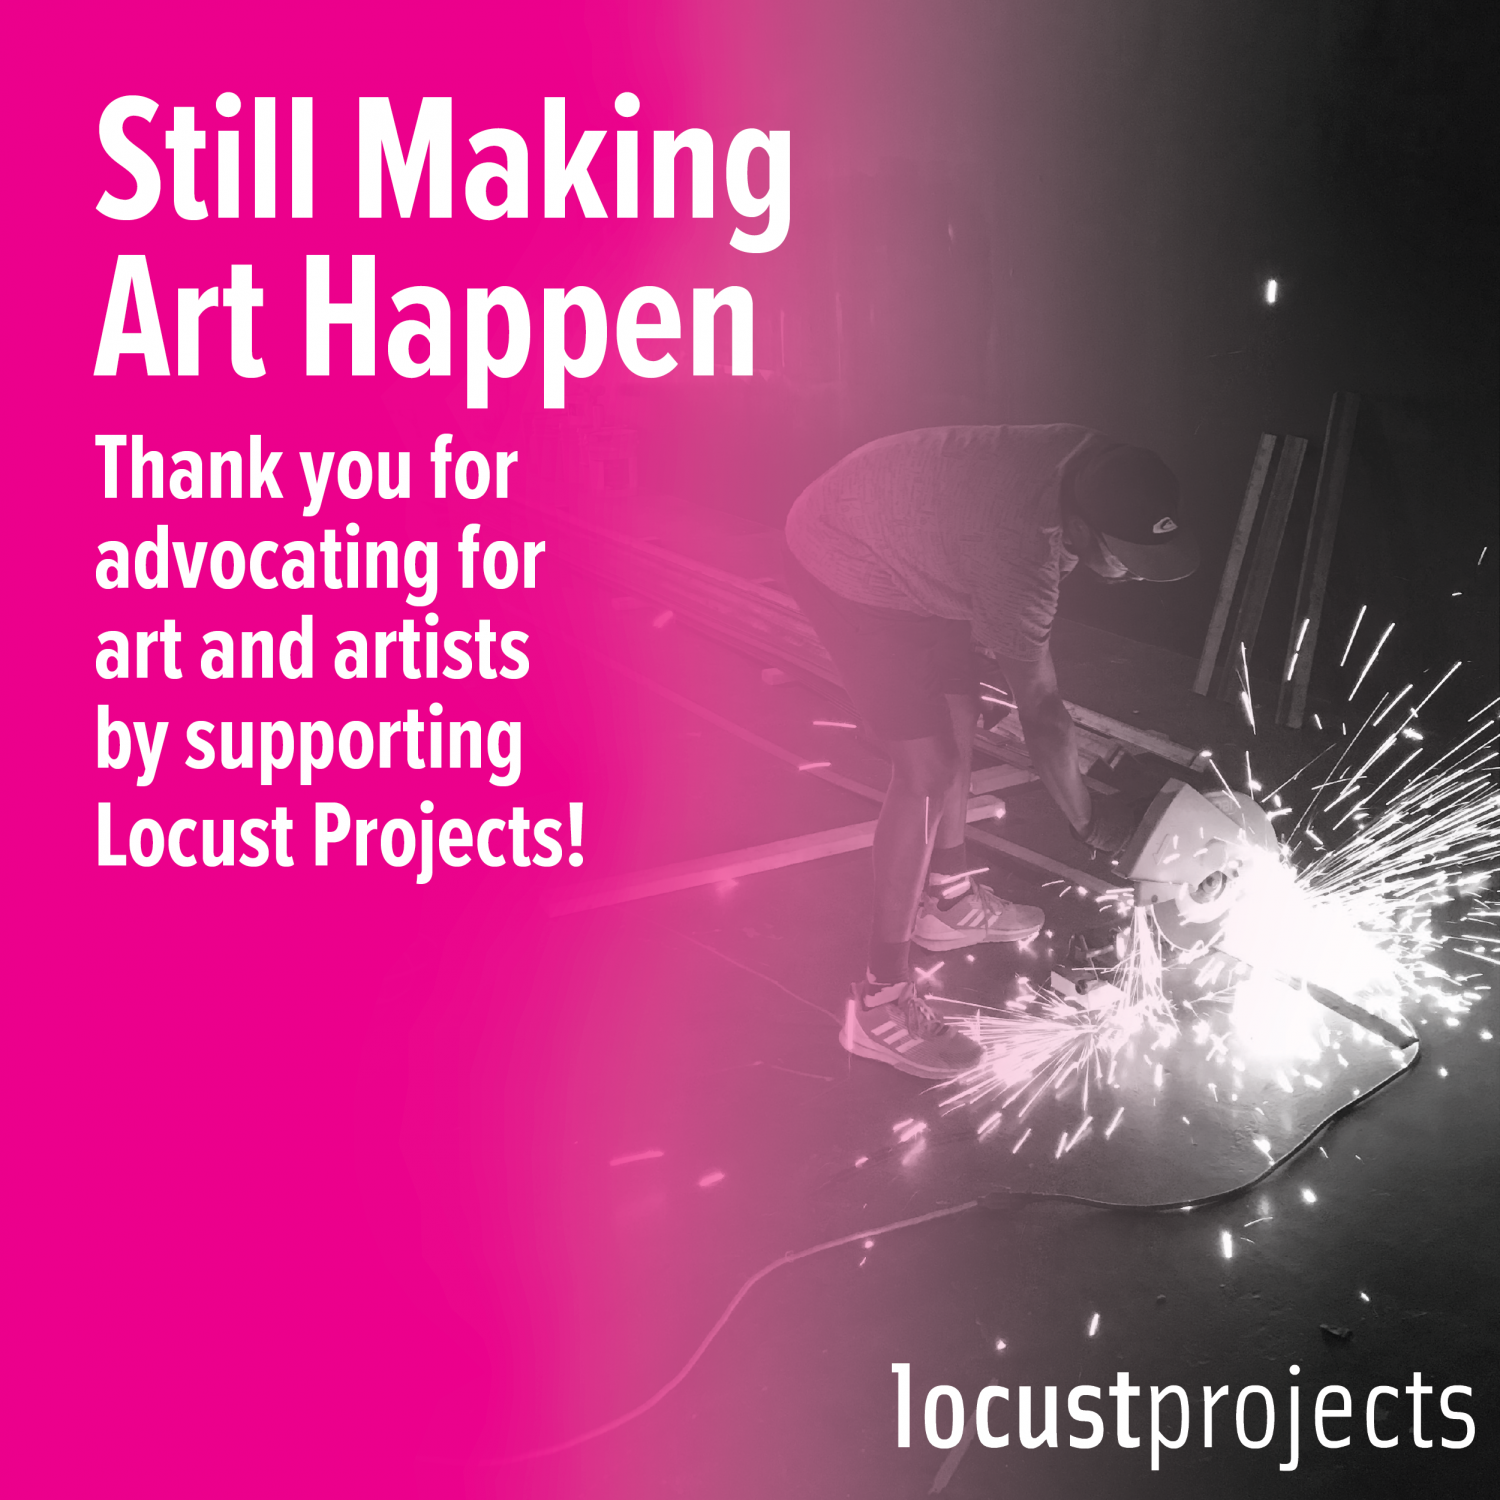 Still Making Art Happen: Action and Advocacy Campaign